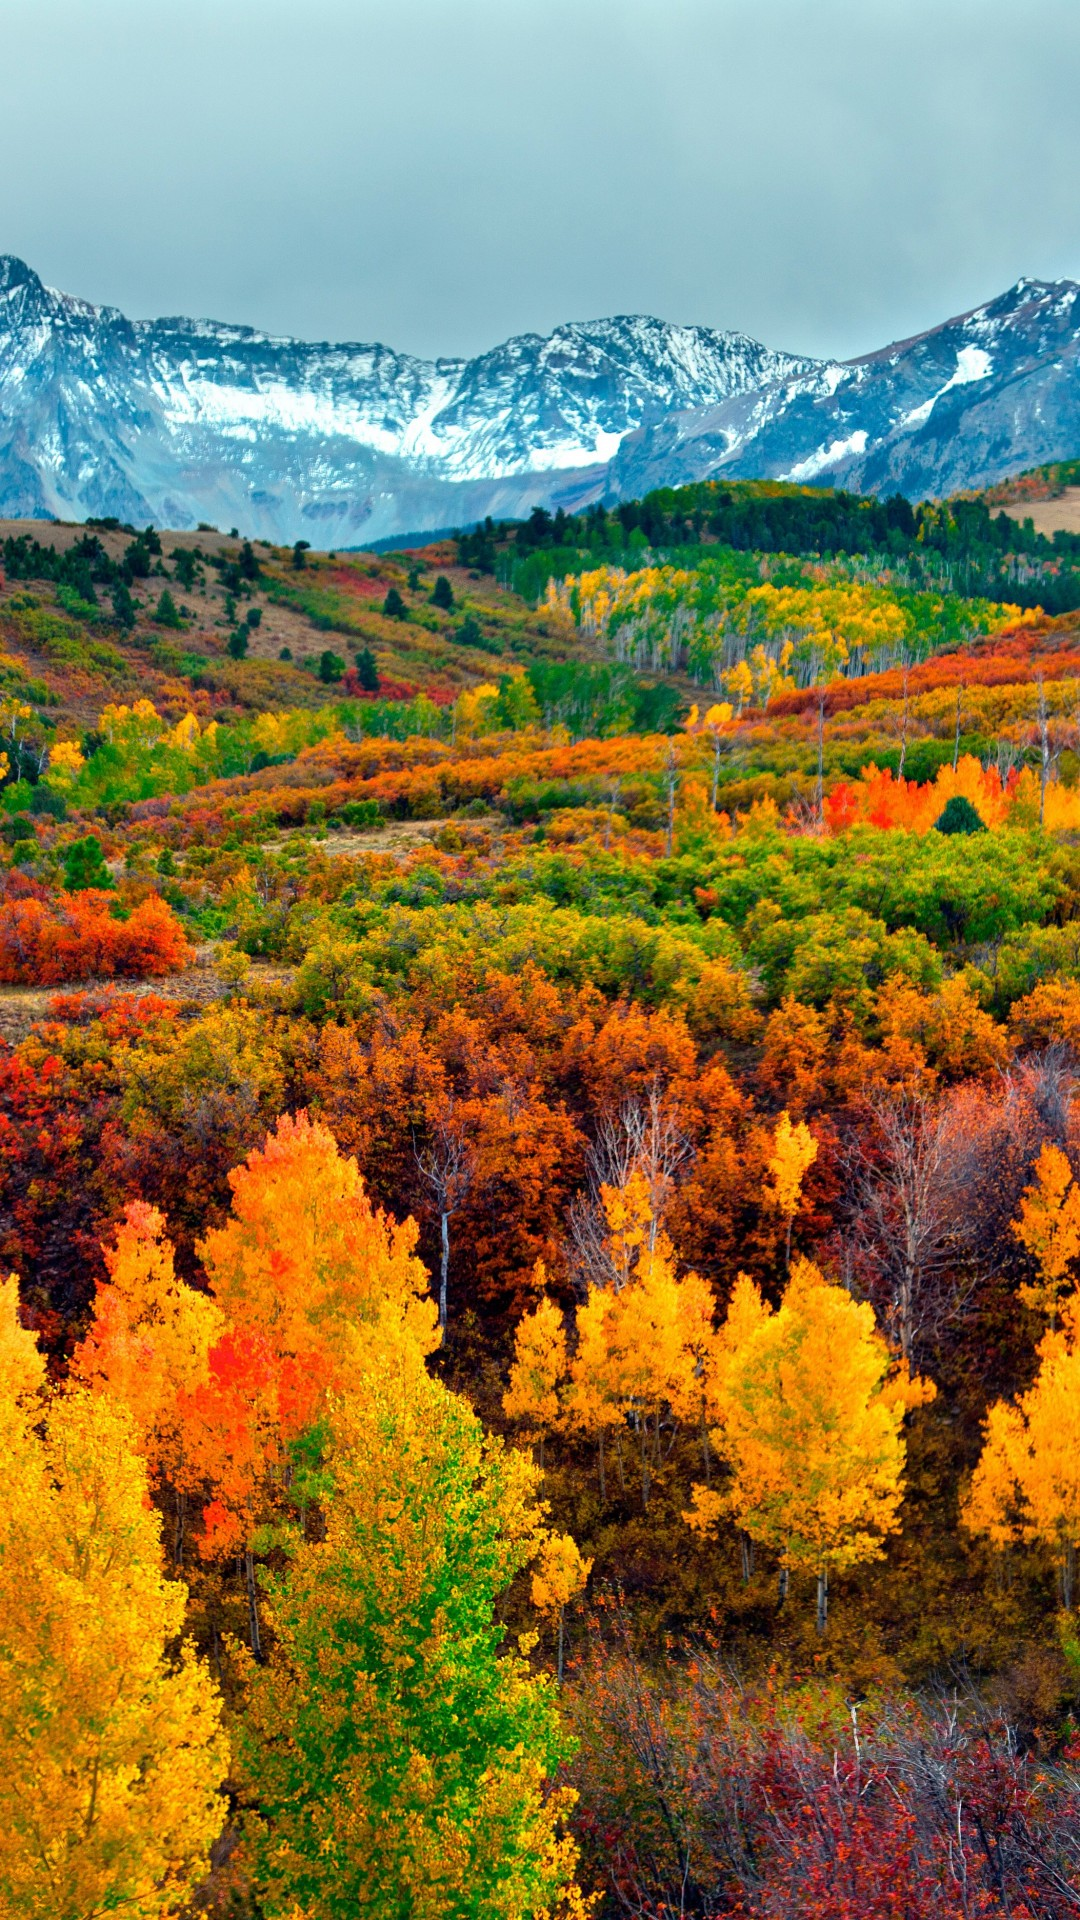 Beautiful Wallpaper With Quotes For Facebook Wallpaper Autumn Forest Mountain 5k Nature 16242